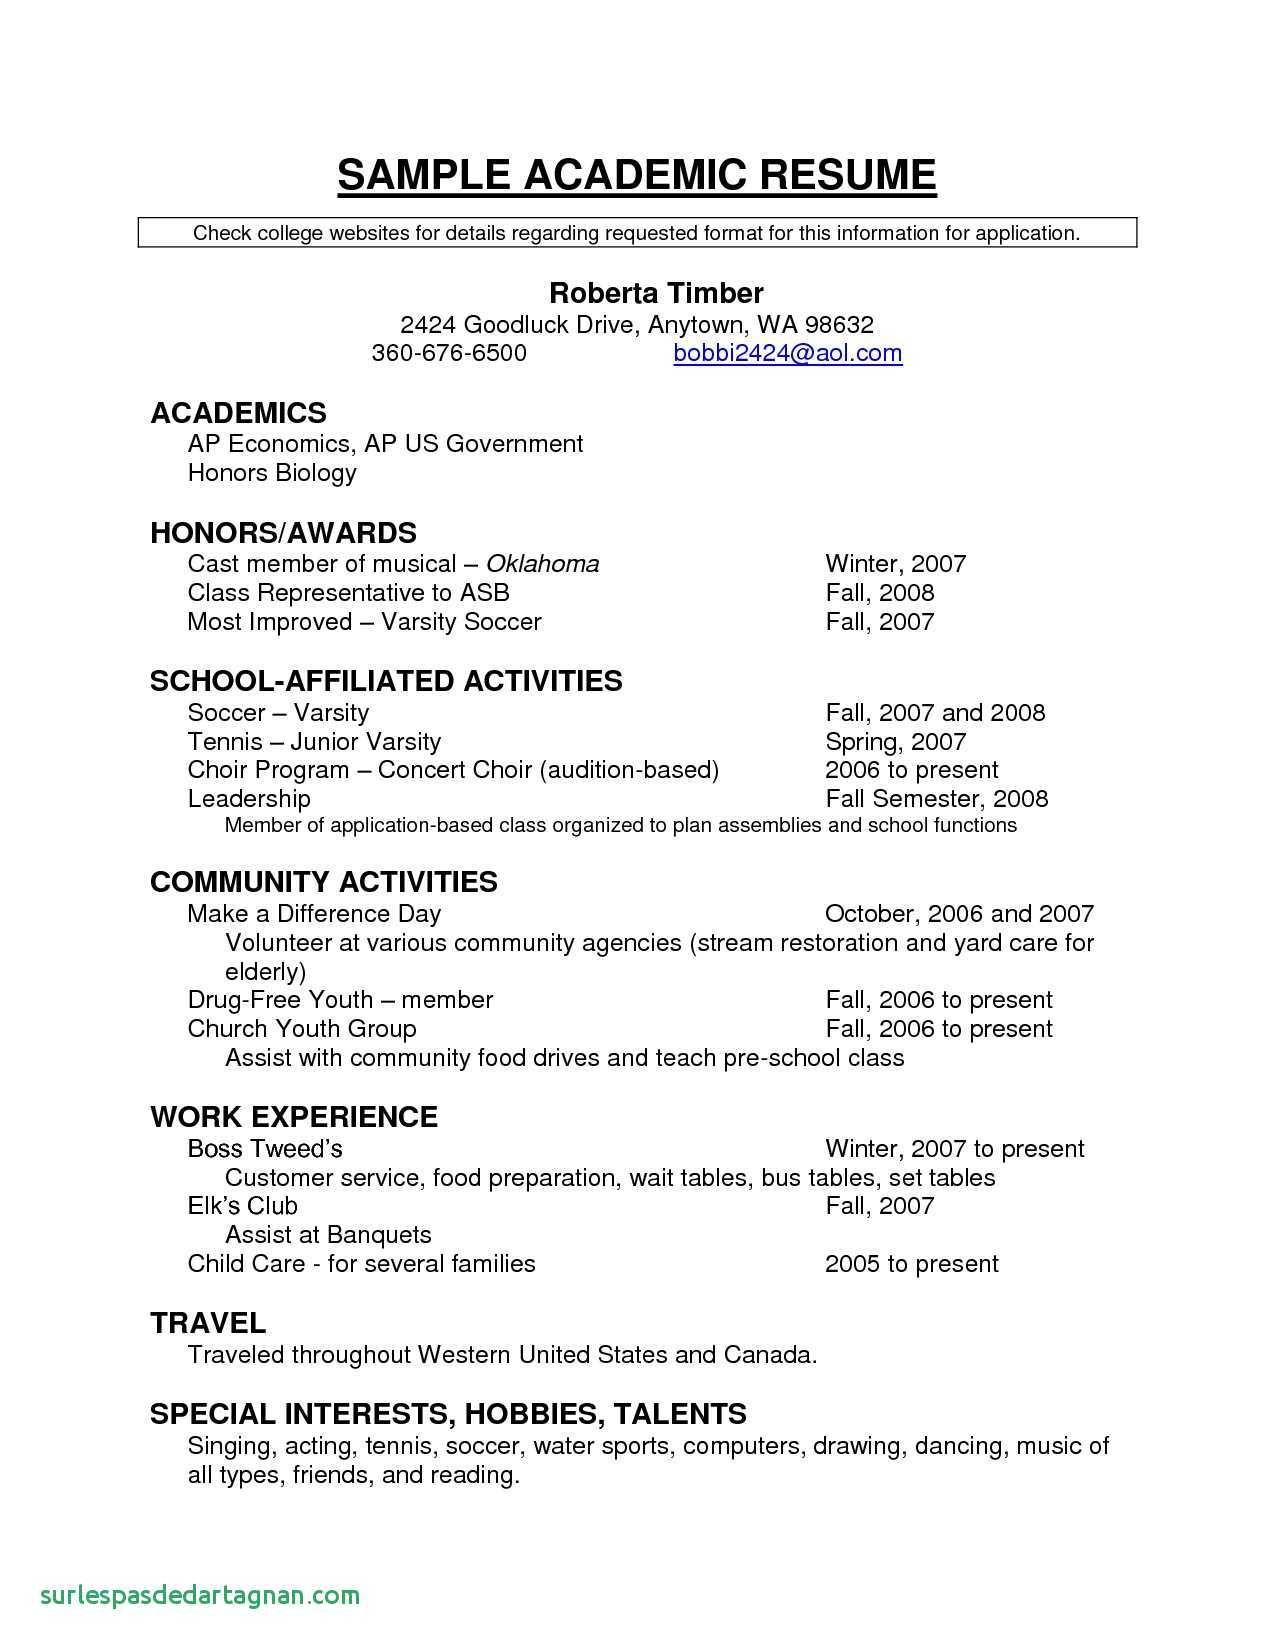 Soccer Resume Template - Good Resume Examples New Unique Resume for Highschool Students